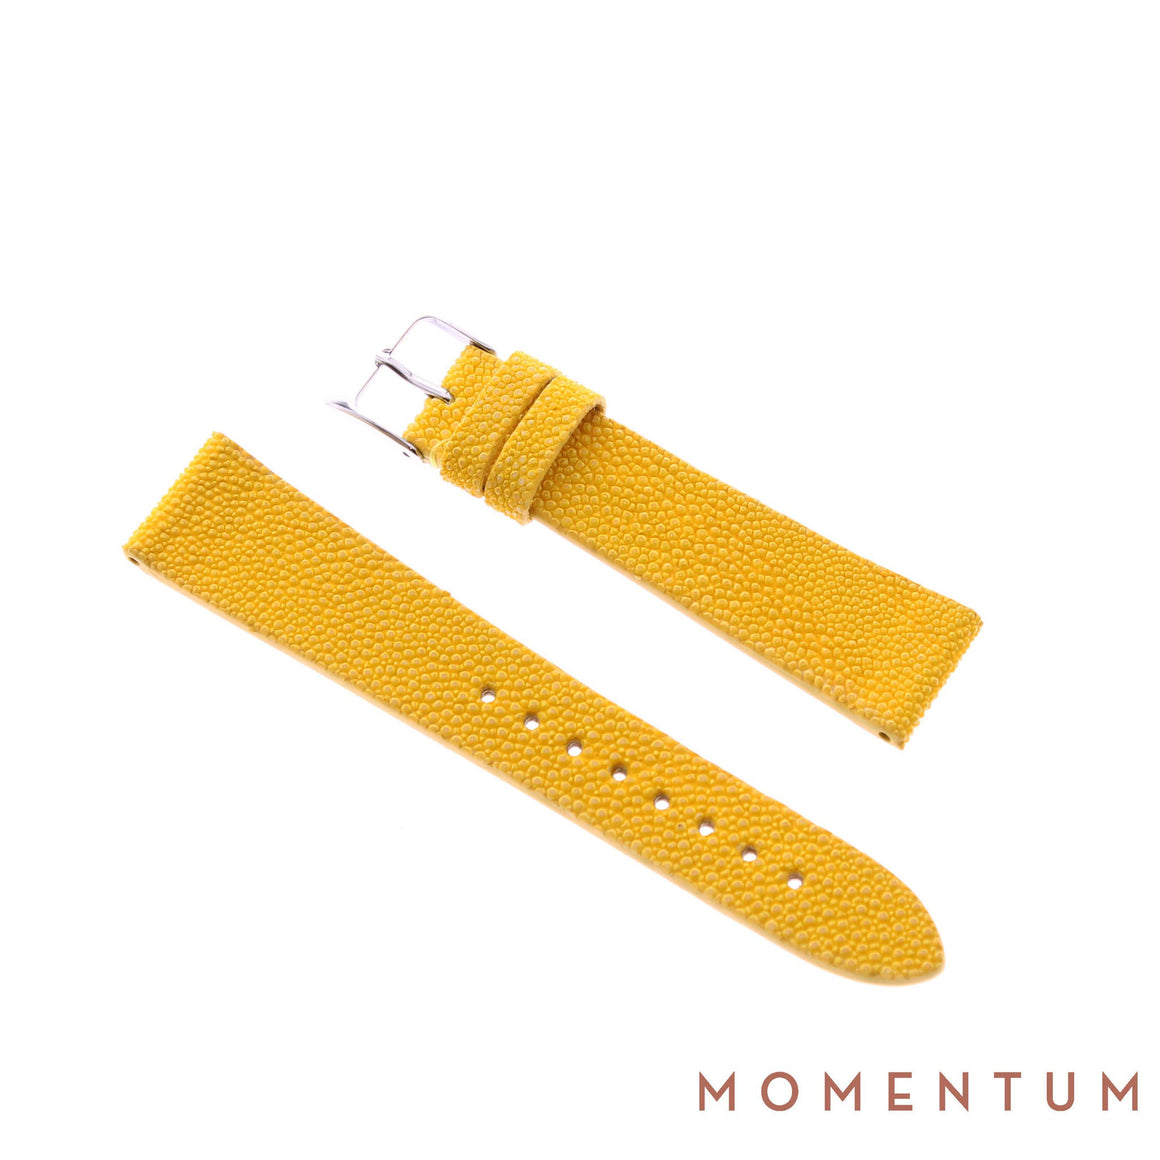 Vintage Strap - Yellow - Stingray - Momentum Dubai